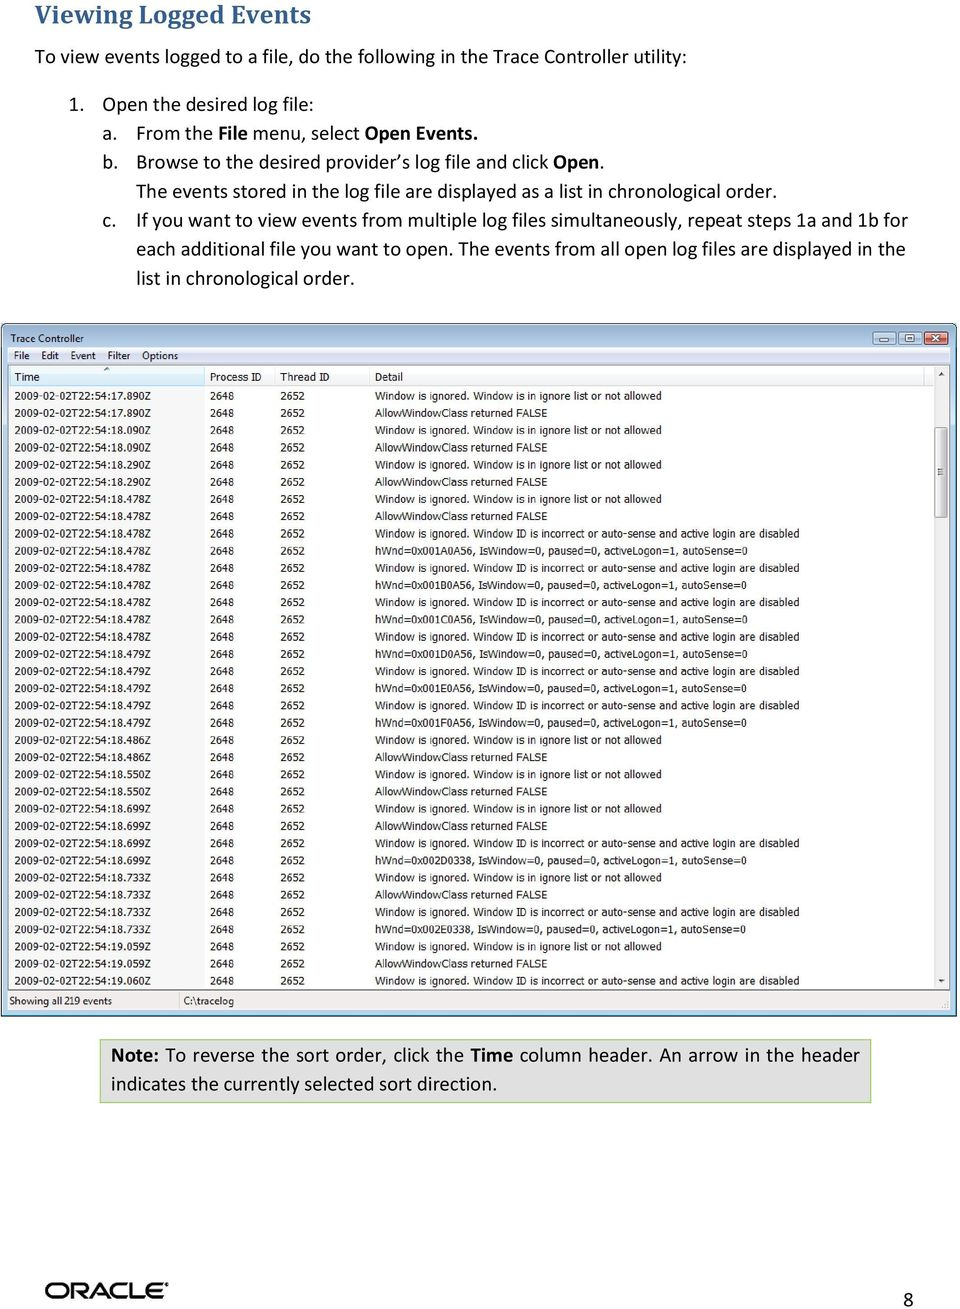 The events stored in the log file are displayed as a list in ch